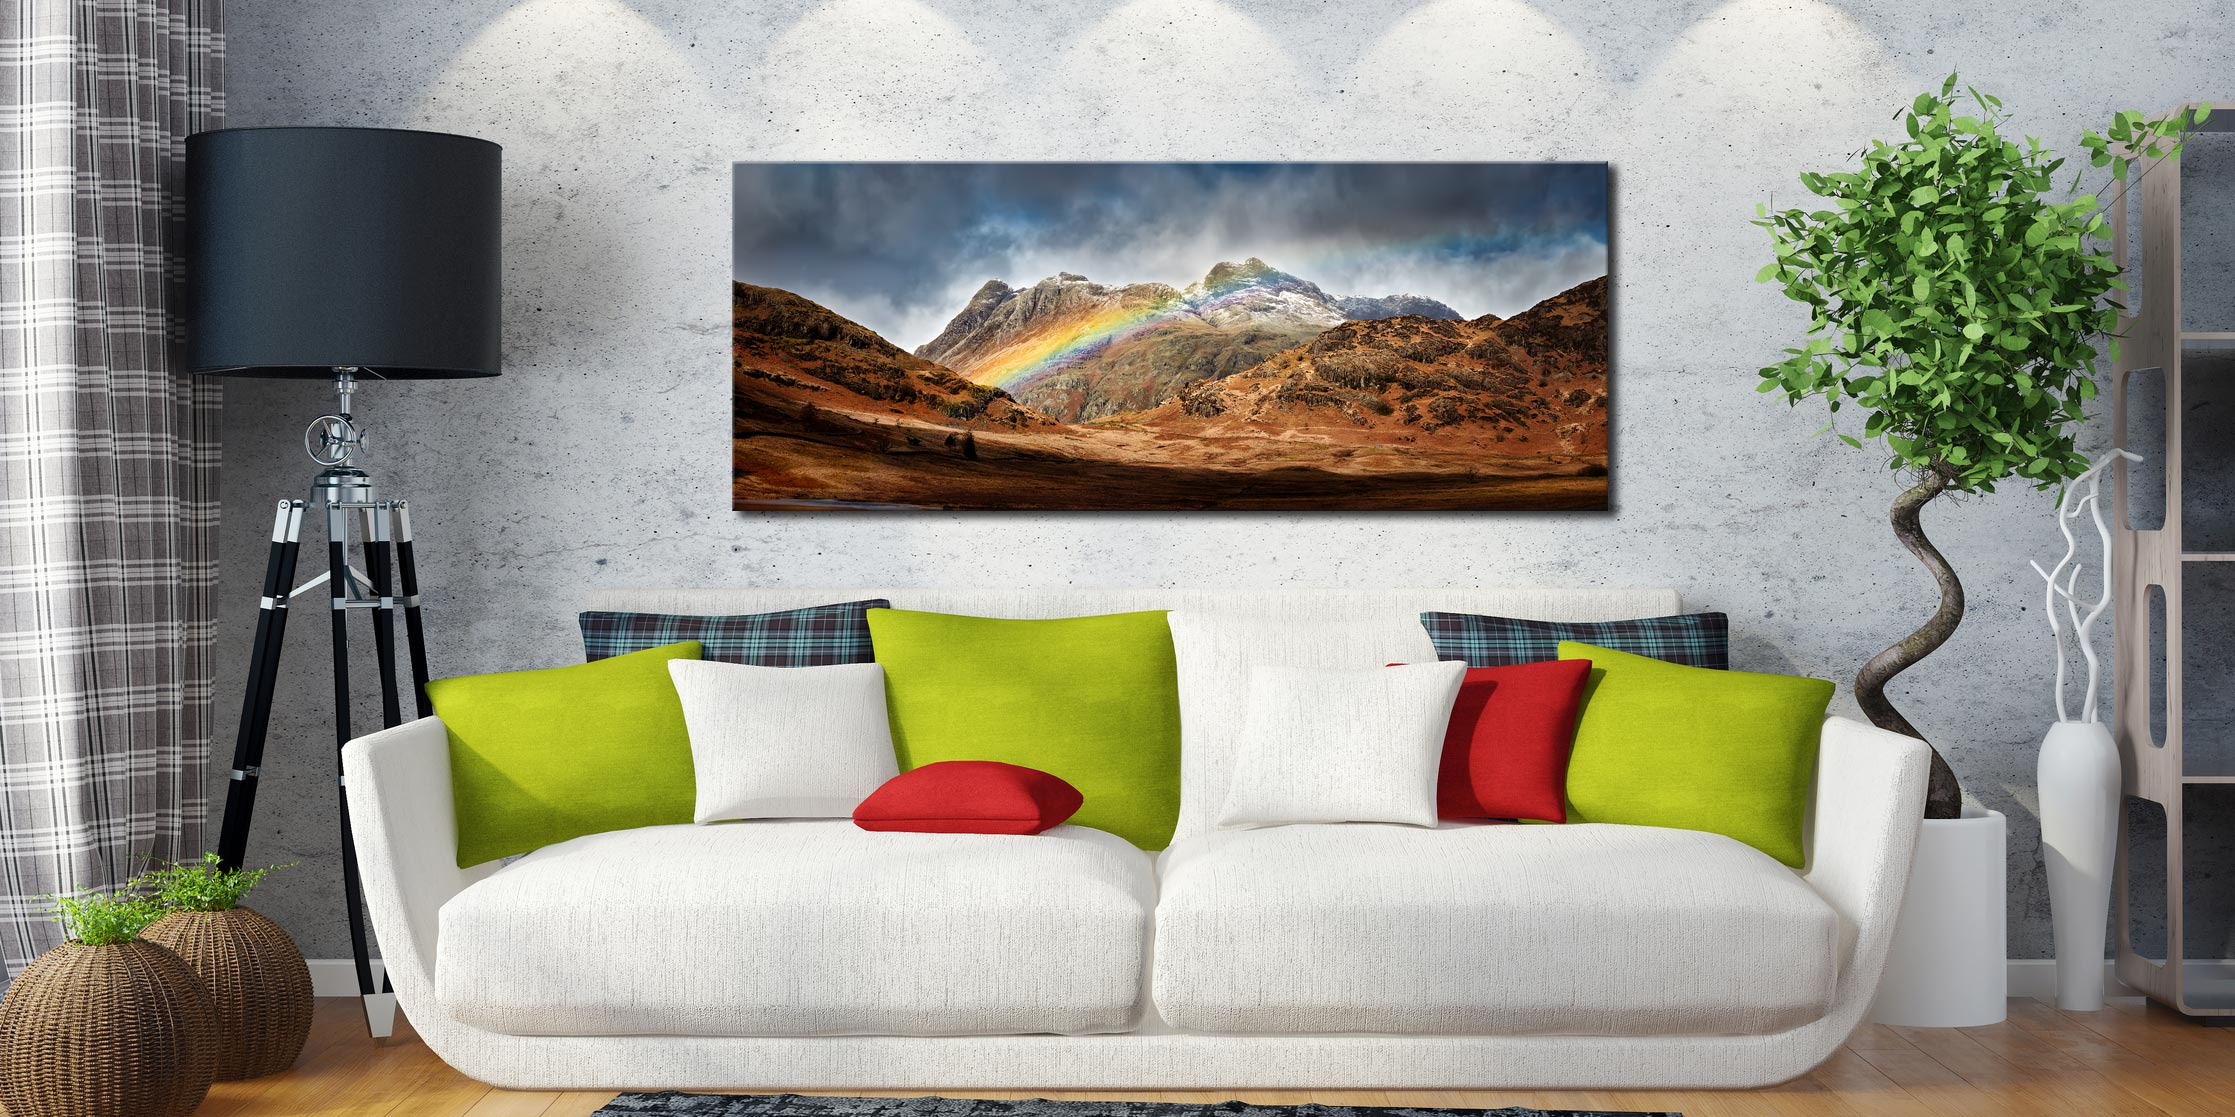 Langdale Pikes Rainbow - Print Aluminium Backing With Acrylic Glazing on Wall